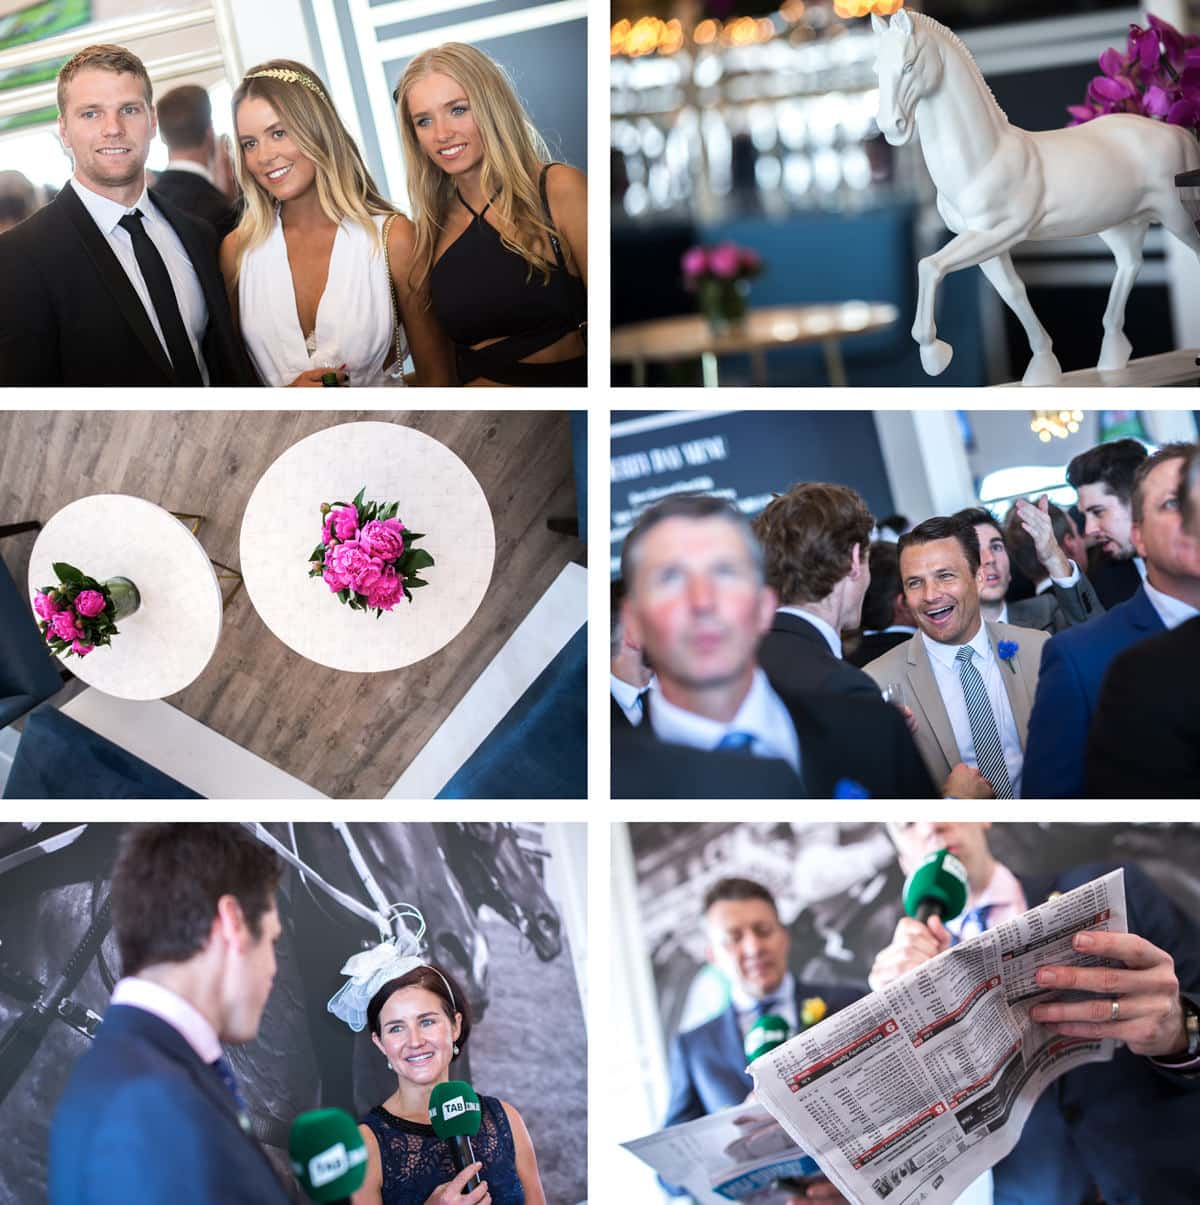 Celebrity event photography services in Melbourne